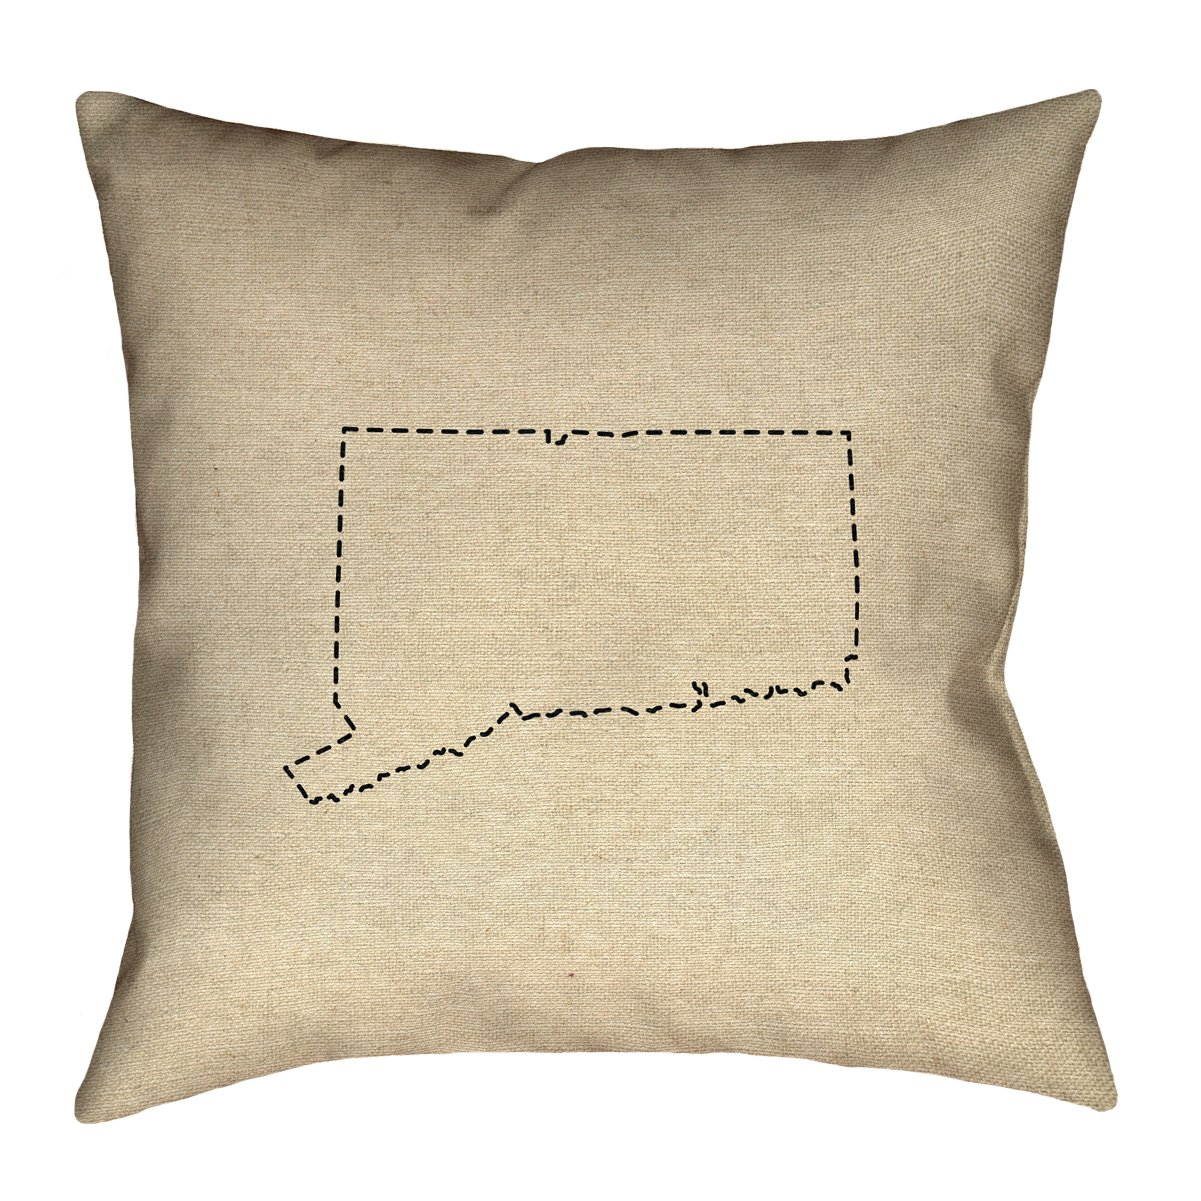 ArtVerse Katelyn Smith 16 x 16 Spun Polyester Connecticut Outline Pillow